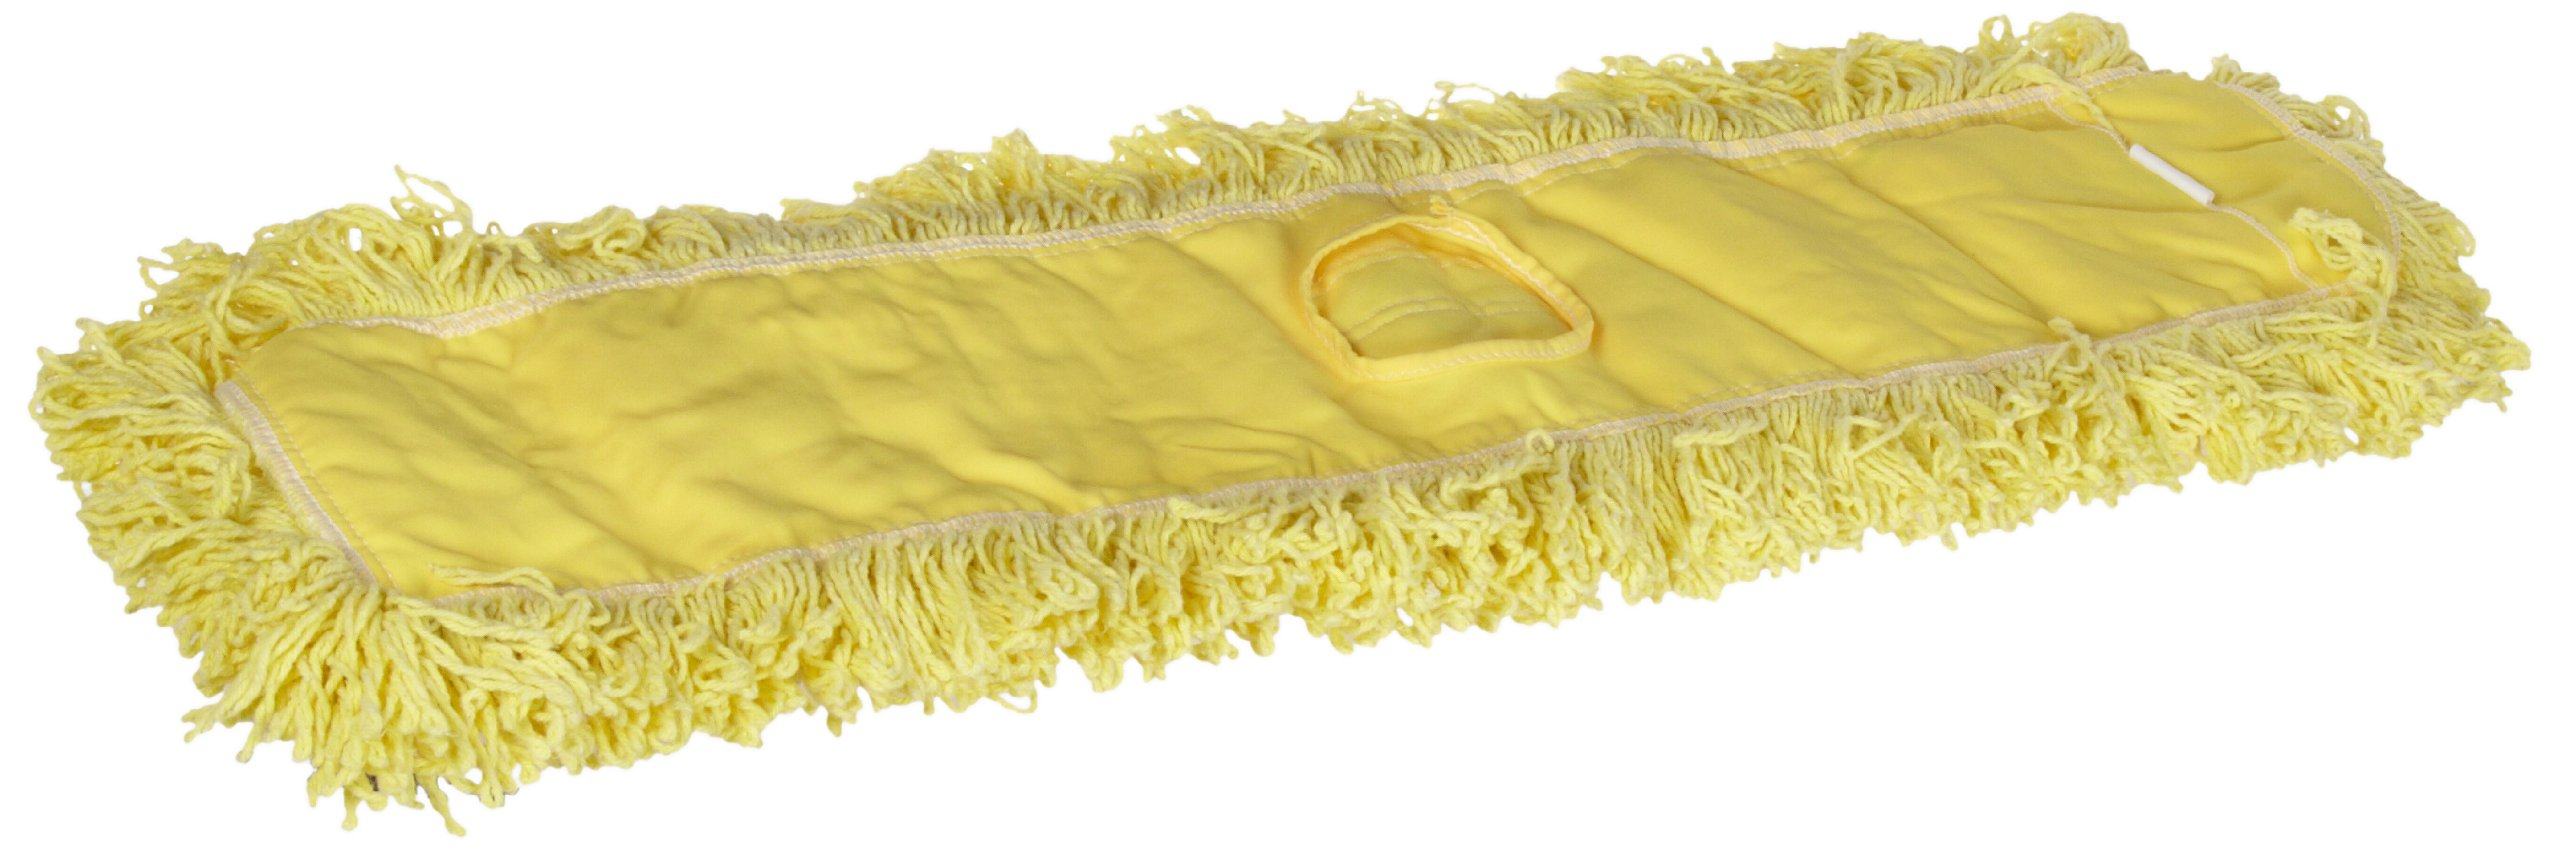 Rubbermaid Commercial Trapper Dust Mop, 36'', Yellow, FGJ15503YL00